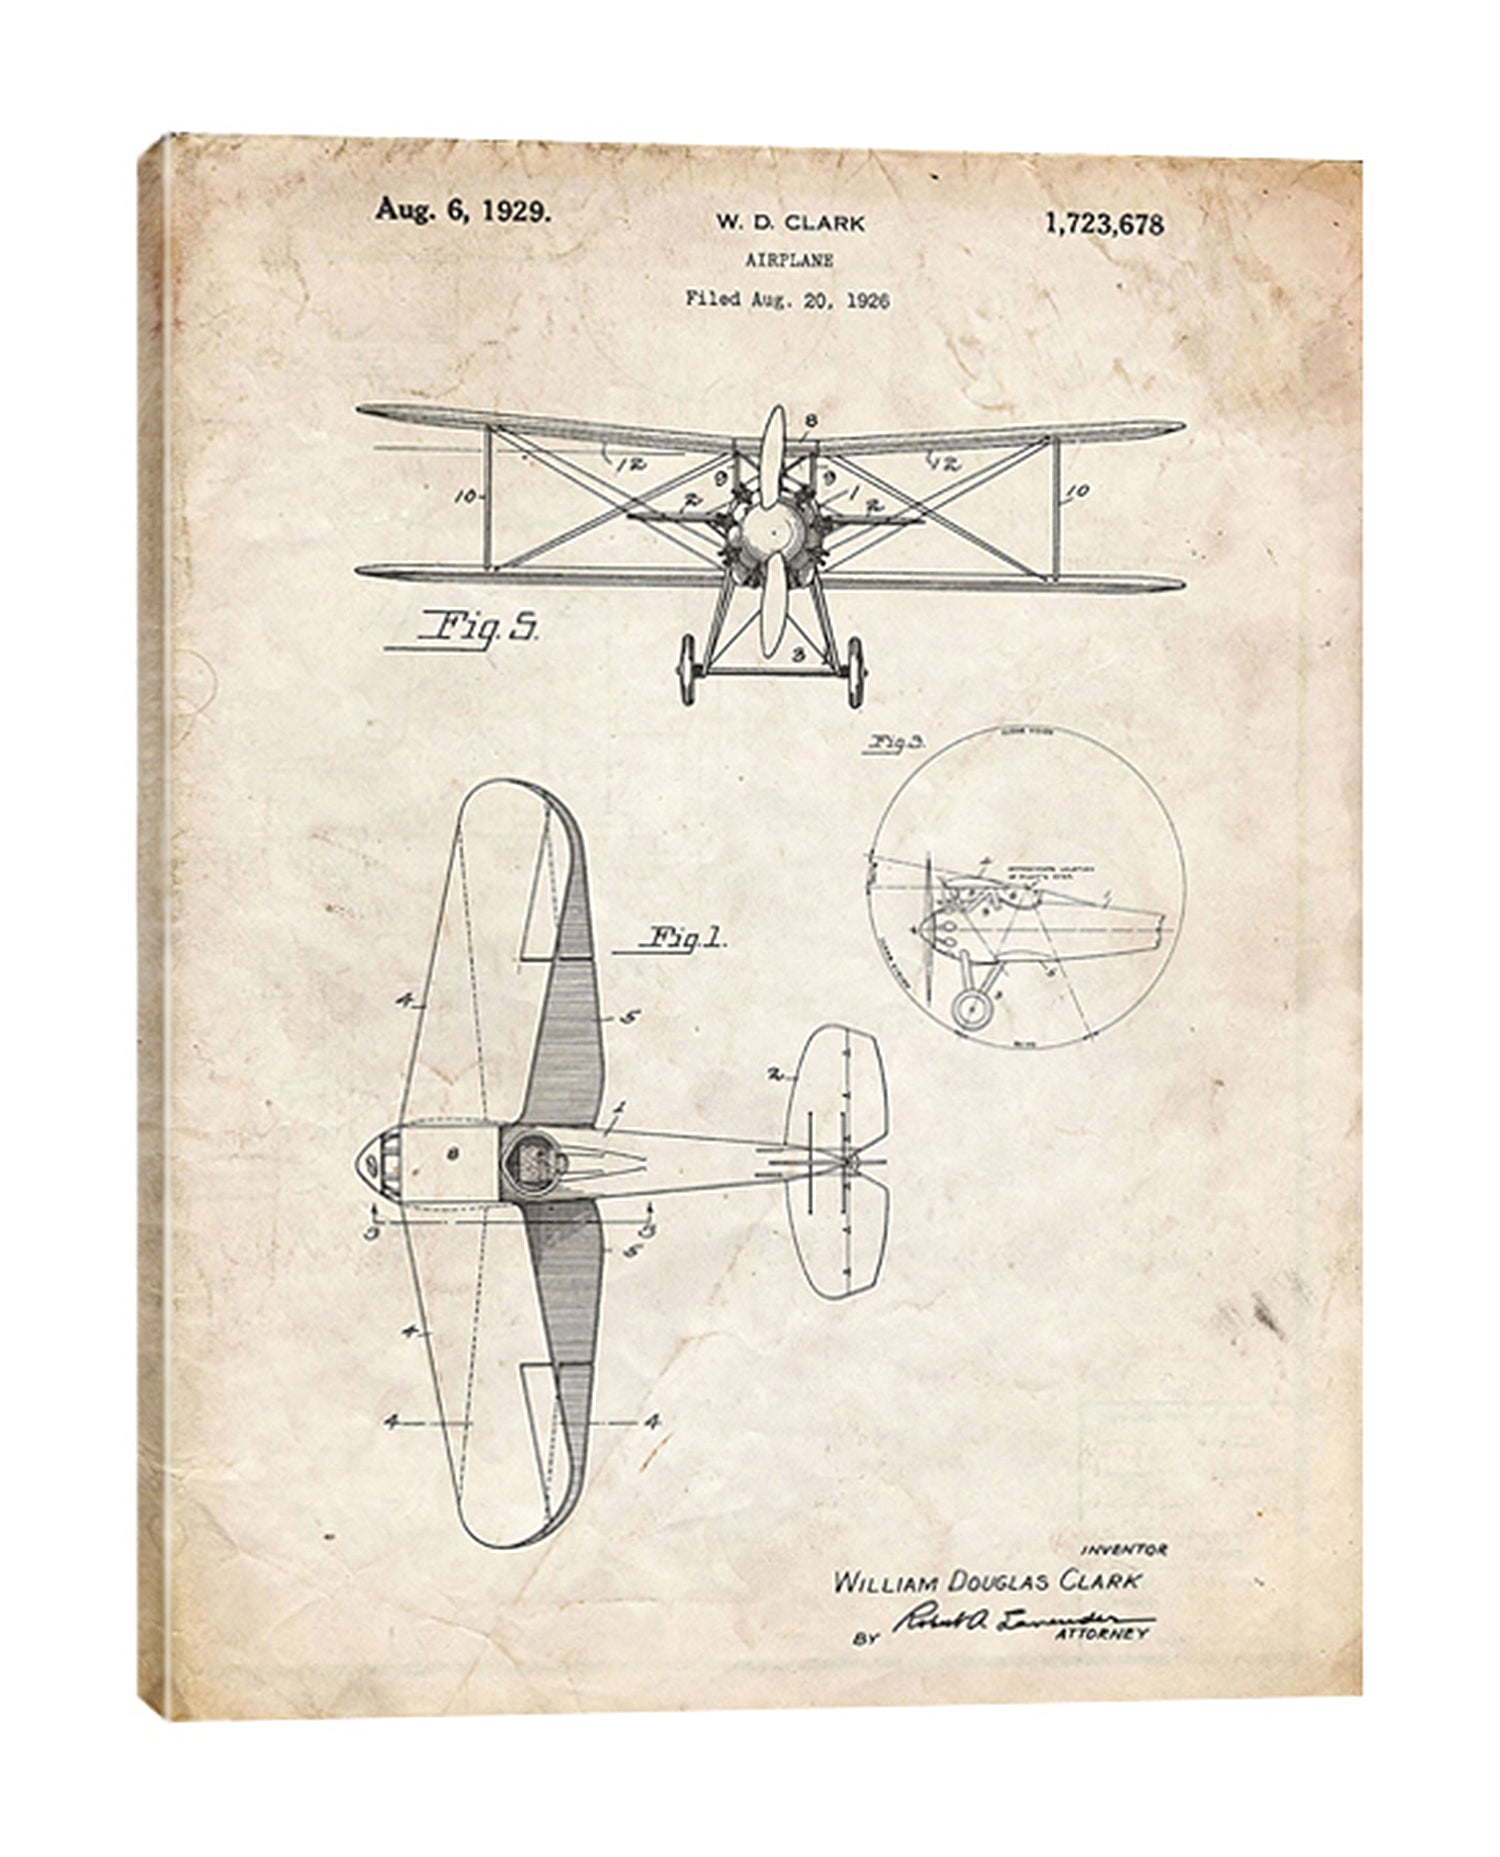 Cole-Borders,Modern & Contemporary,Transportation,wd clark plane,plane,airplanes,blueprint,patented,words and phrases,drawing,sketches,rustic,Mist Gray,White,Gray,Coral Pink,Purple,Tan White